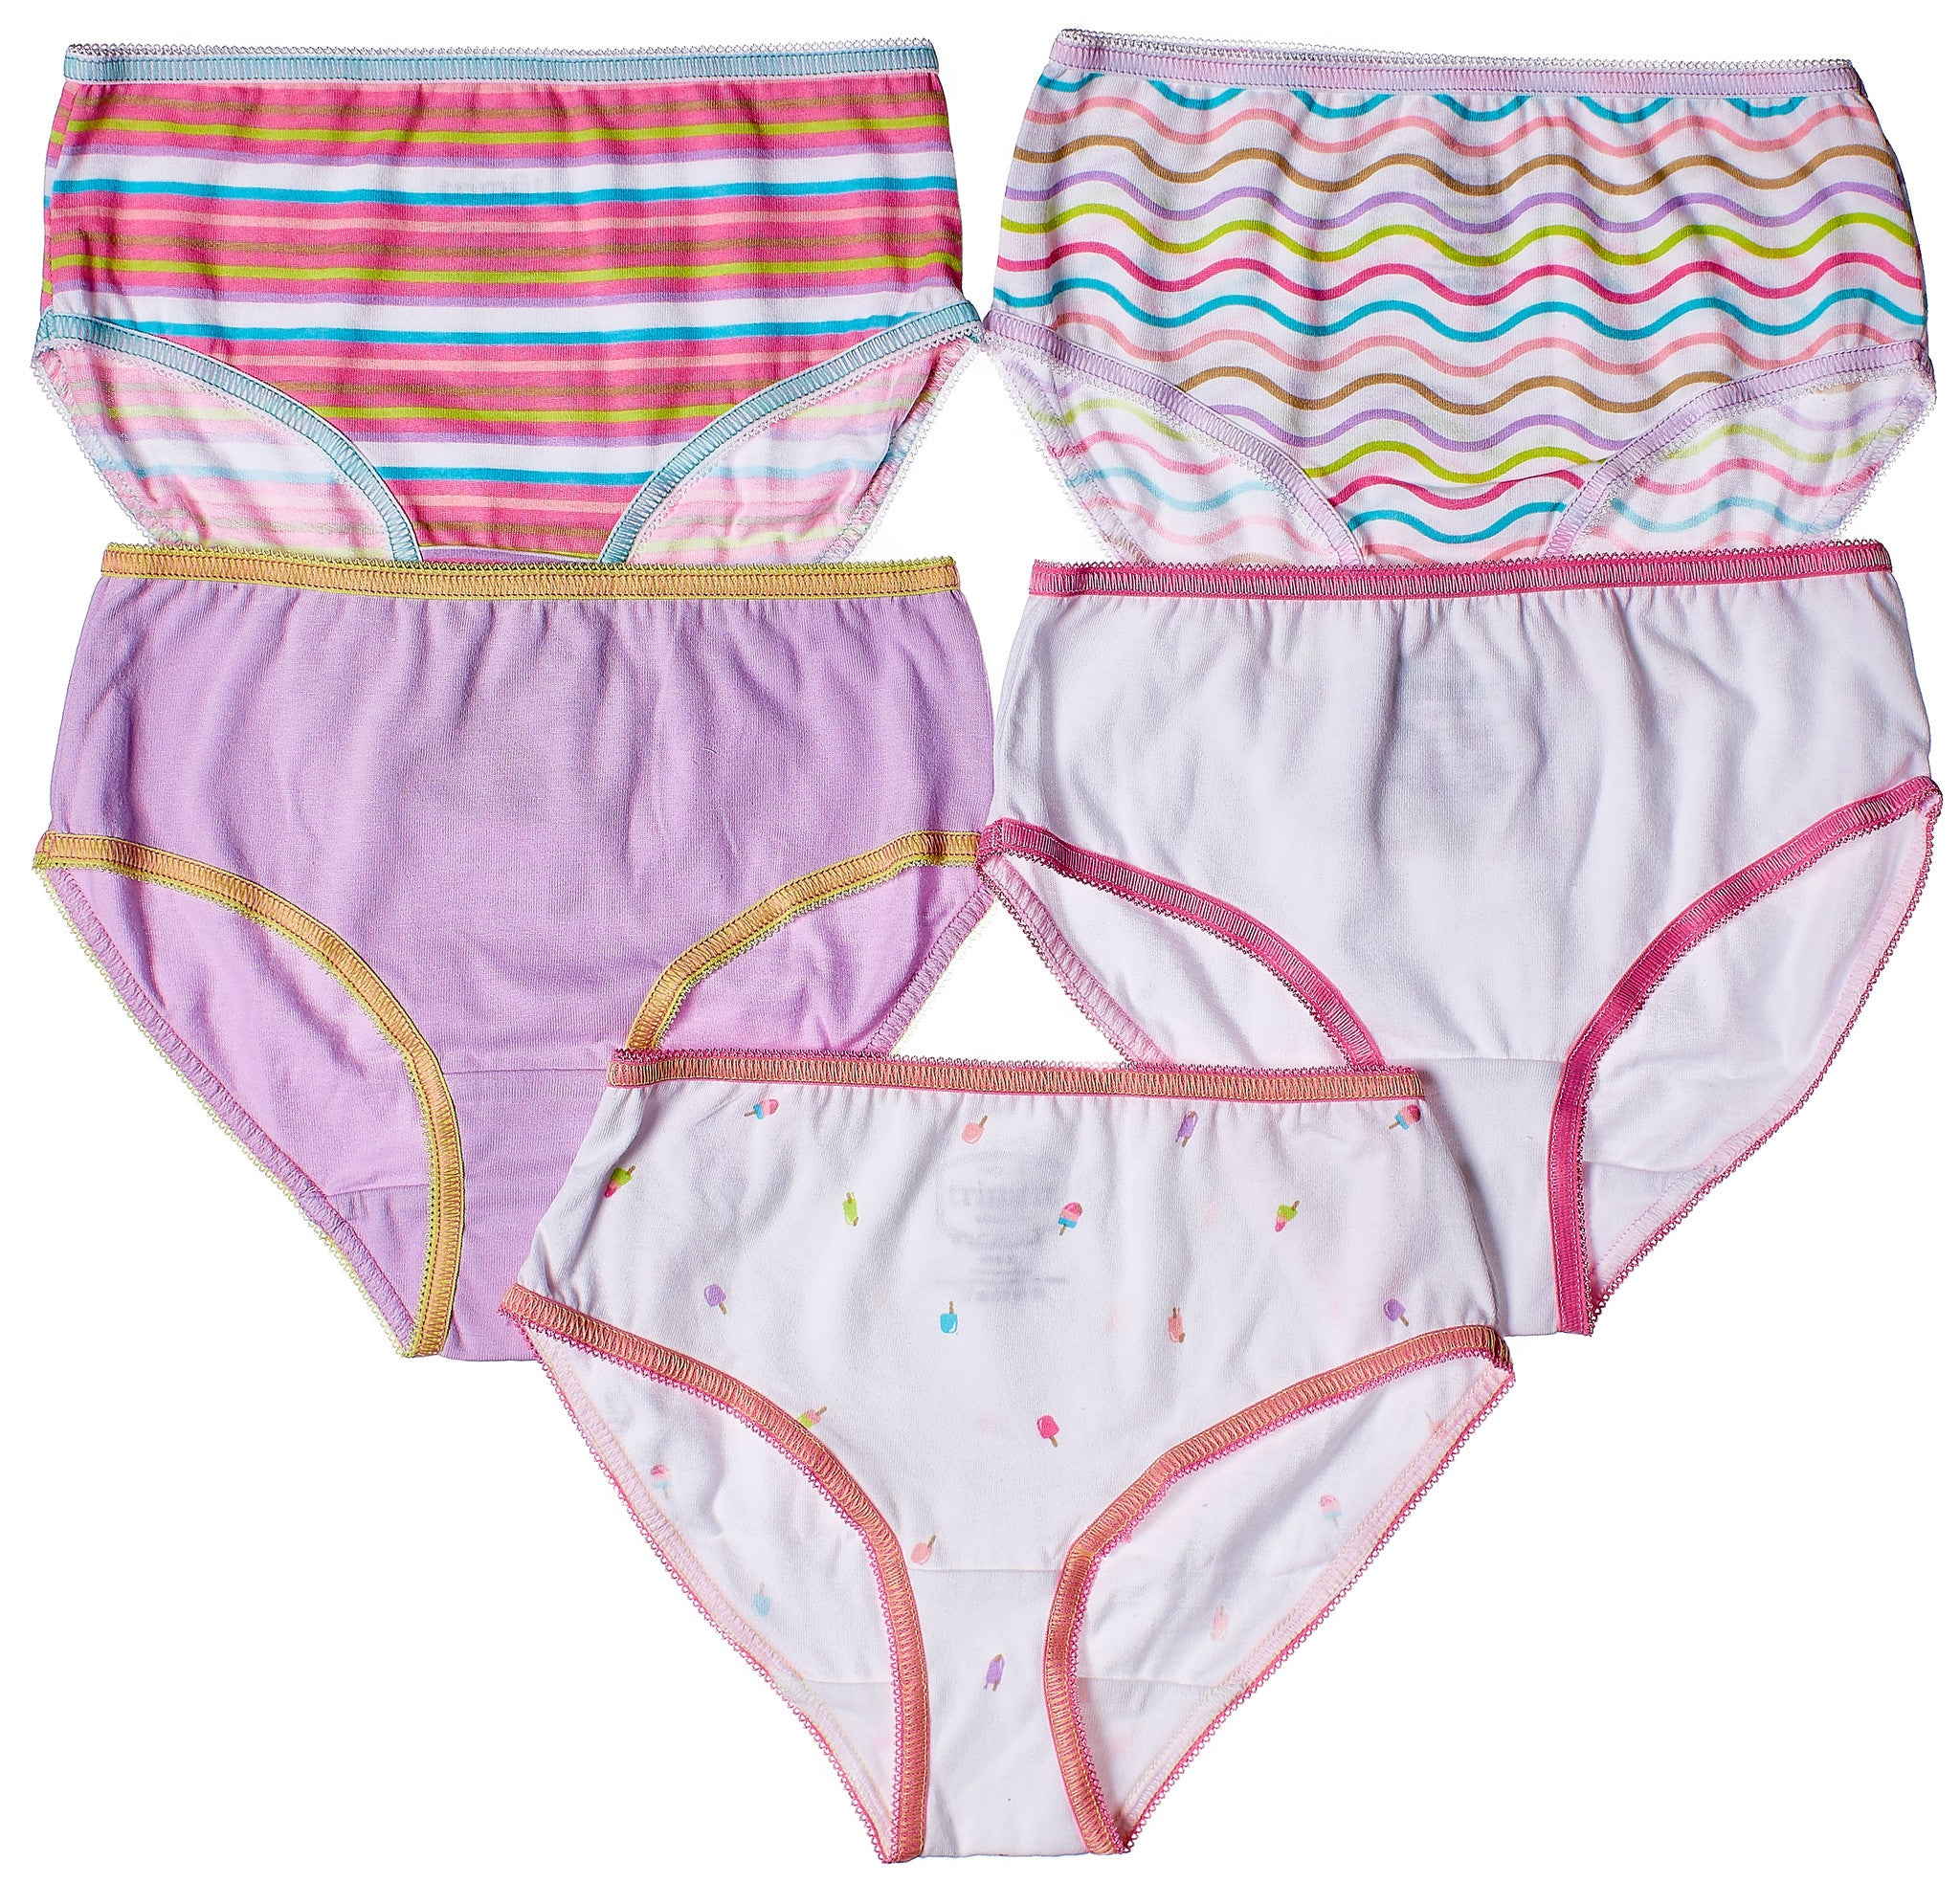 5-Pack Bright Popsicles Tagless Panties 100% Cotton Fashion Prints